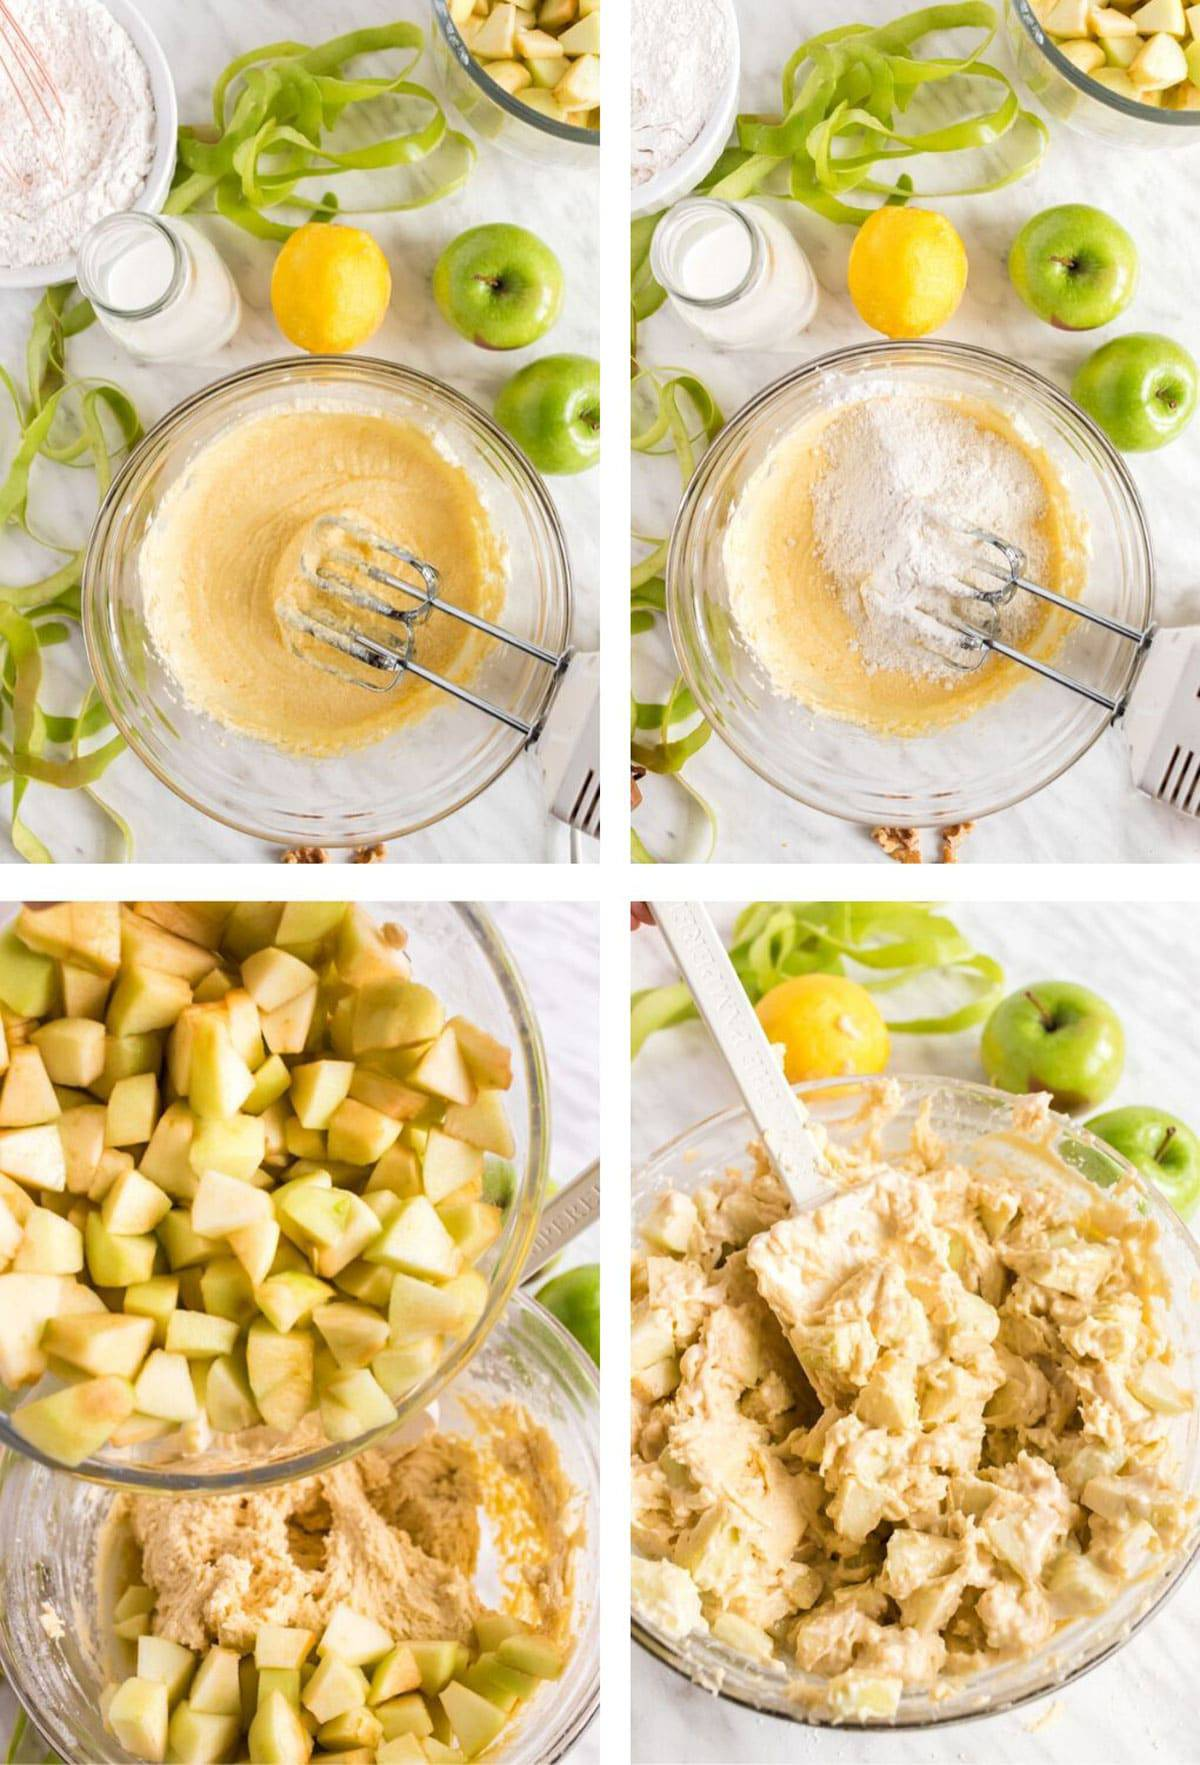 Adding apples to a mixing bowl